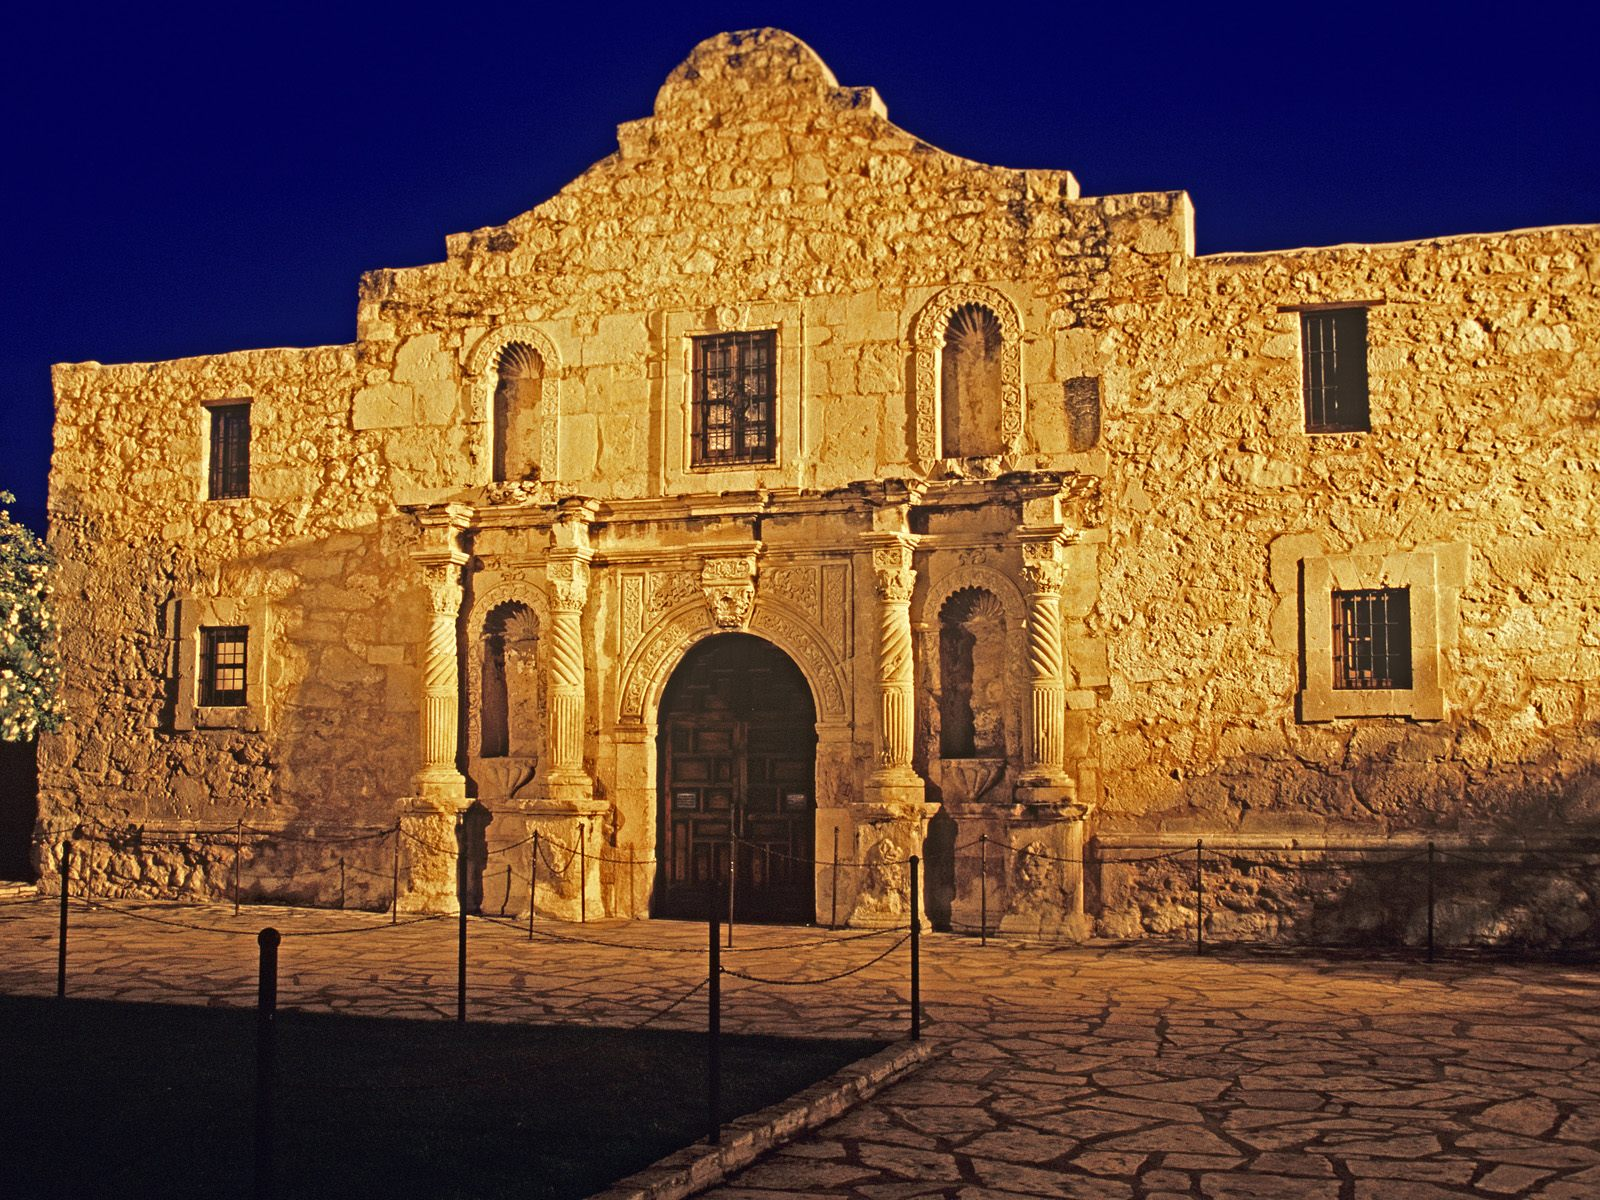 the alamo san antonio texas College Girls Sex, Party Sex, Free Porn!! 6 Site Network Pass for the price ...